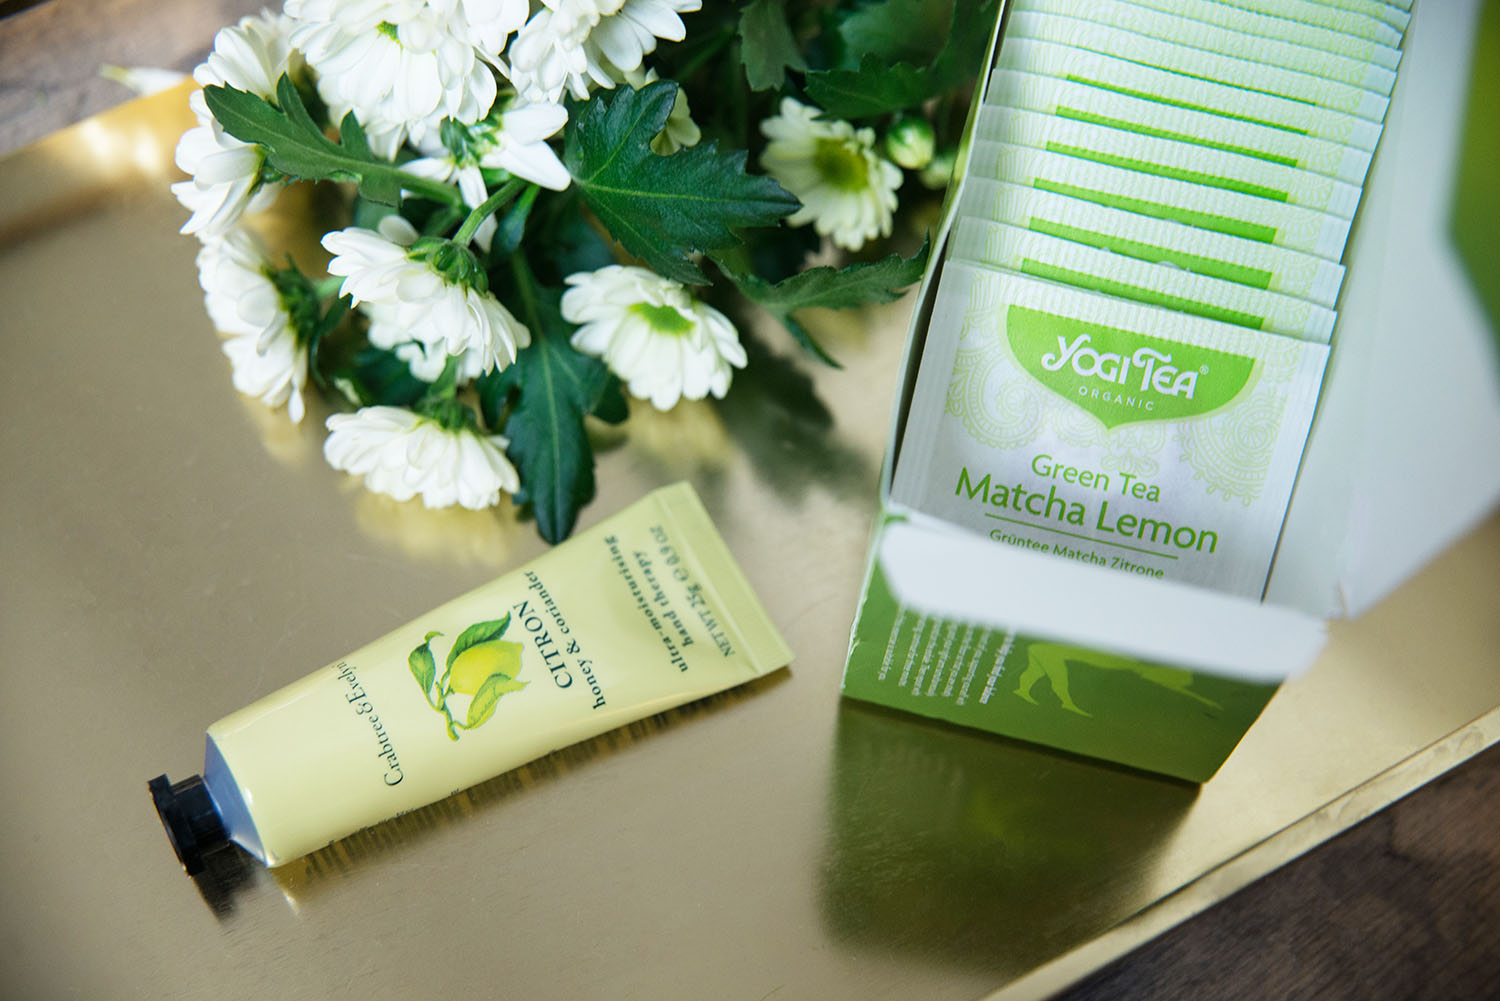 Crabtree & Evelyn Citron Hand Therapy Cream & Yogi Tea Green Tea Matcha Lemon